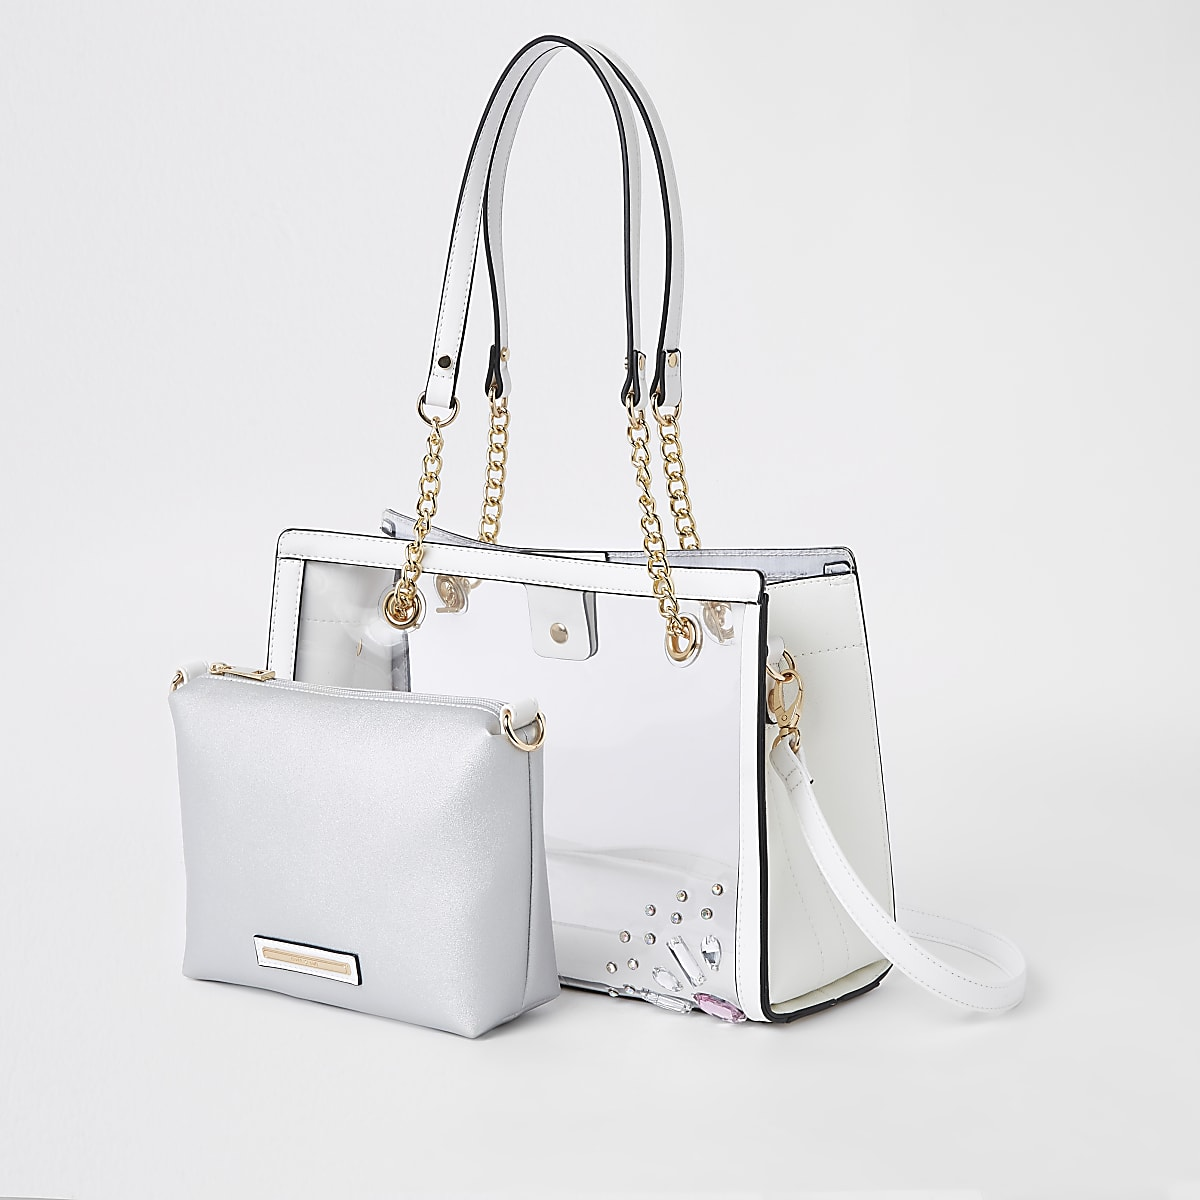 White perspex inner pouch tote bag